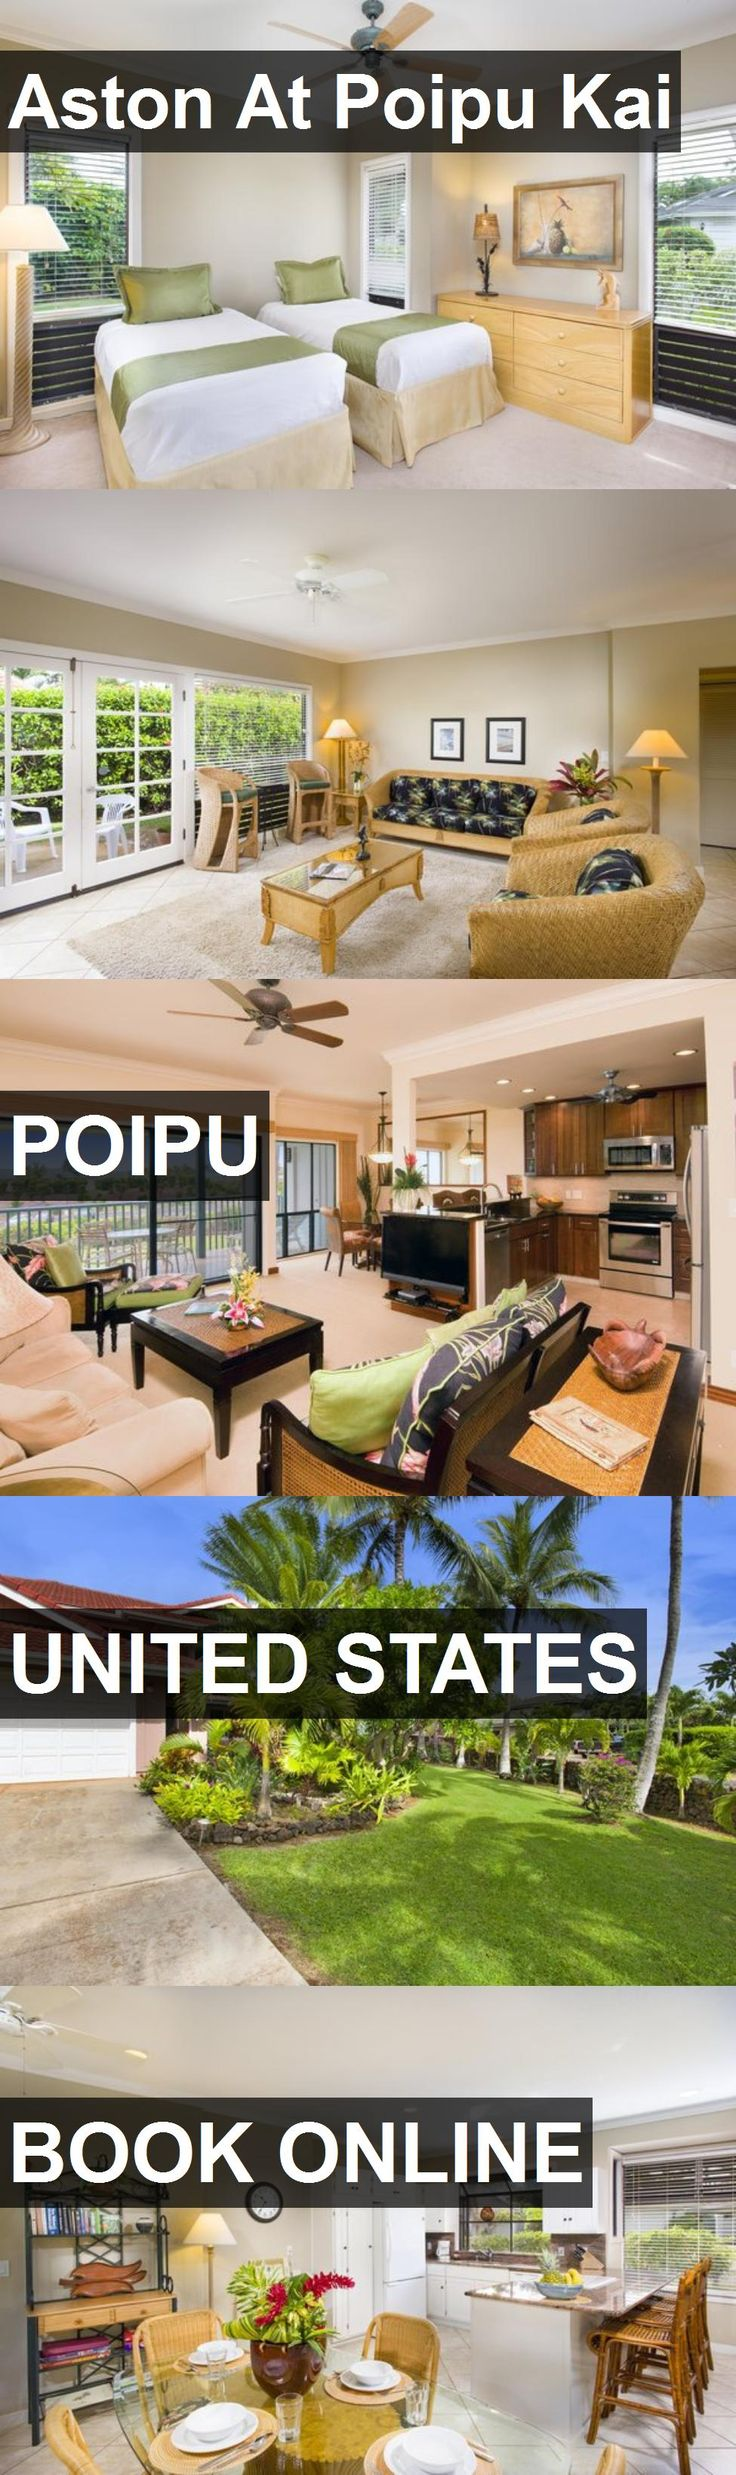 Hotel Aston At Poipu Kai in Poipu, United States. For more information, photos, reviews and best prices please follow the link. #UnitedStates #Poipu #travel #vacation #hotel